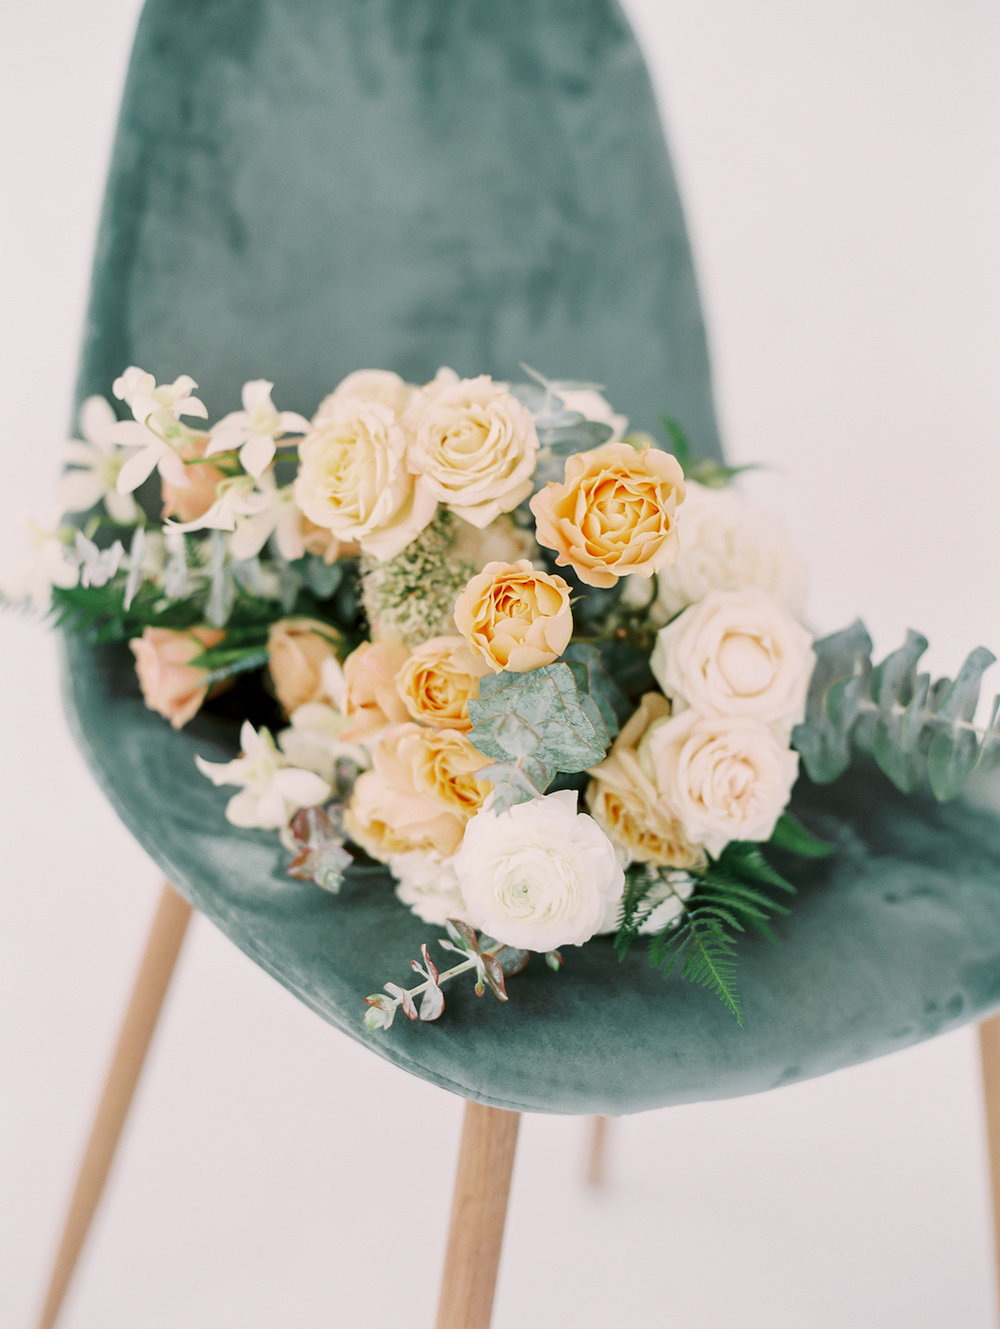 Neutral floral color palette | Studio 710 | Compass Floral | Wedding Florist in San Diego and Southern California | Dear Lovers Photography